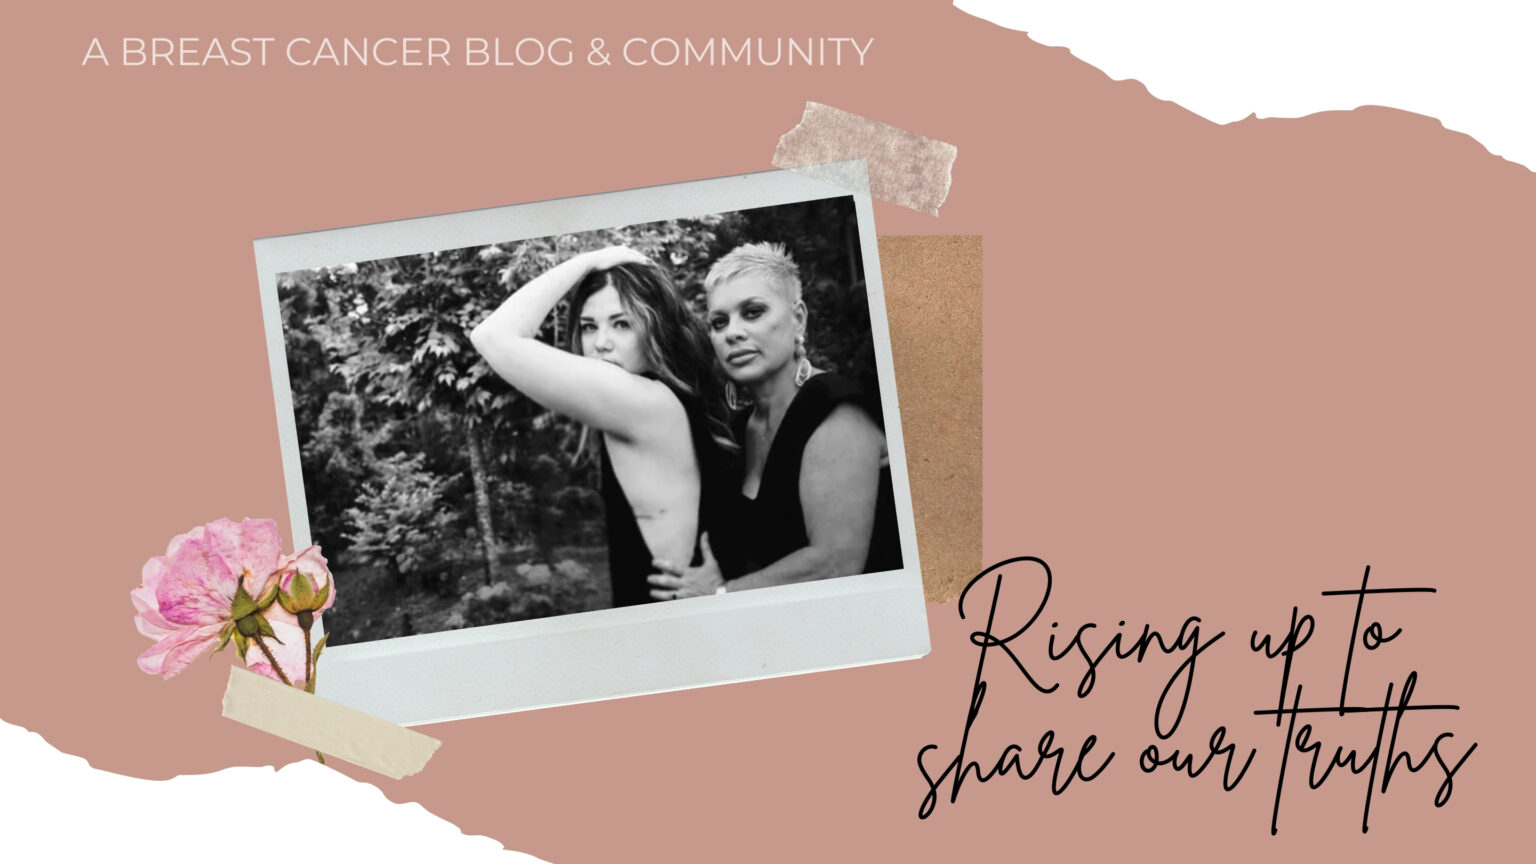 Rising Up to share our truths - BS BREAST CANCER